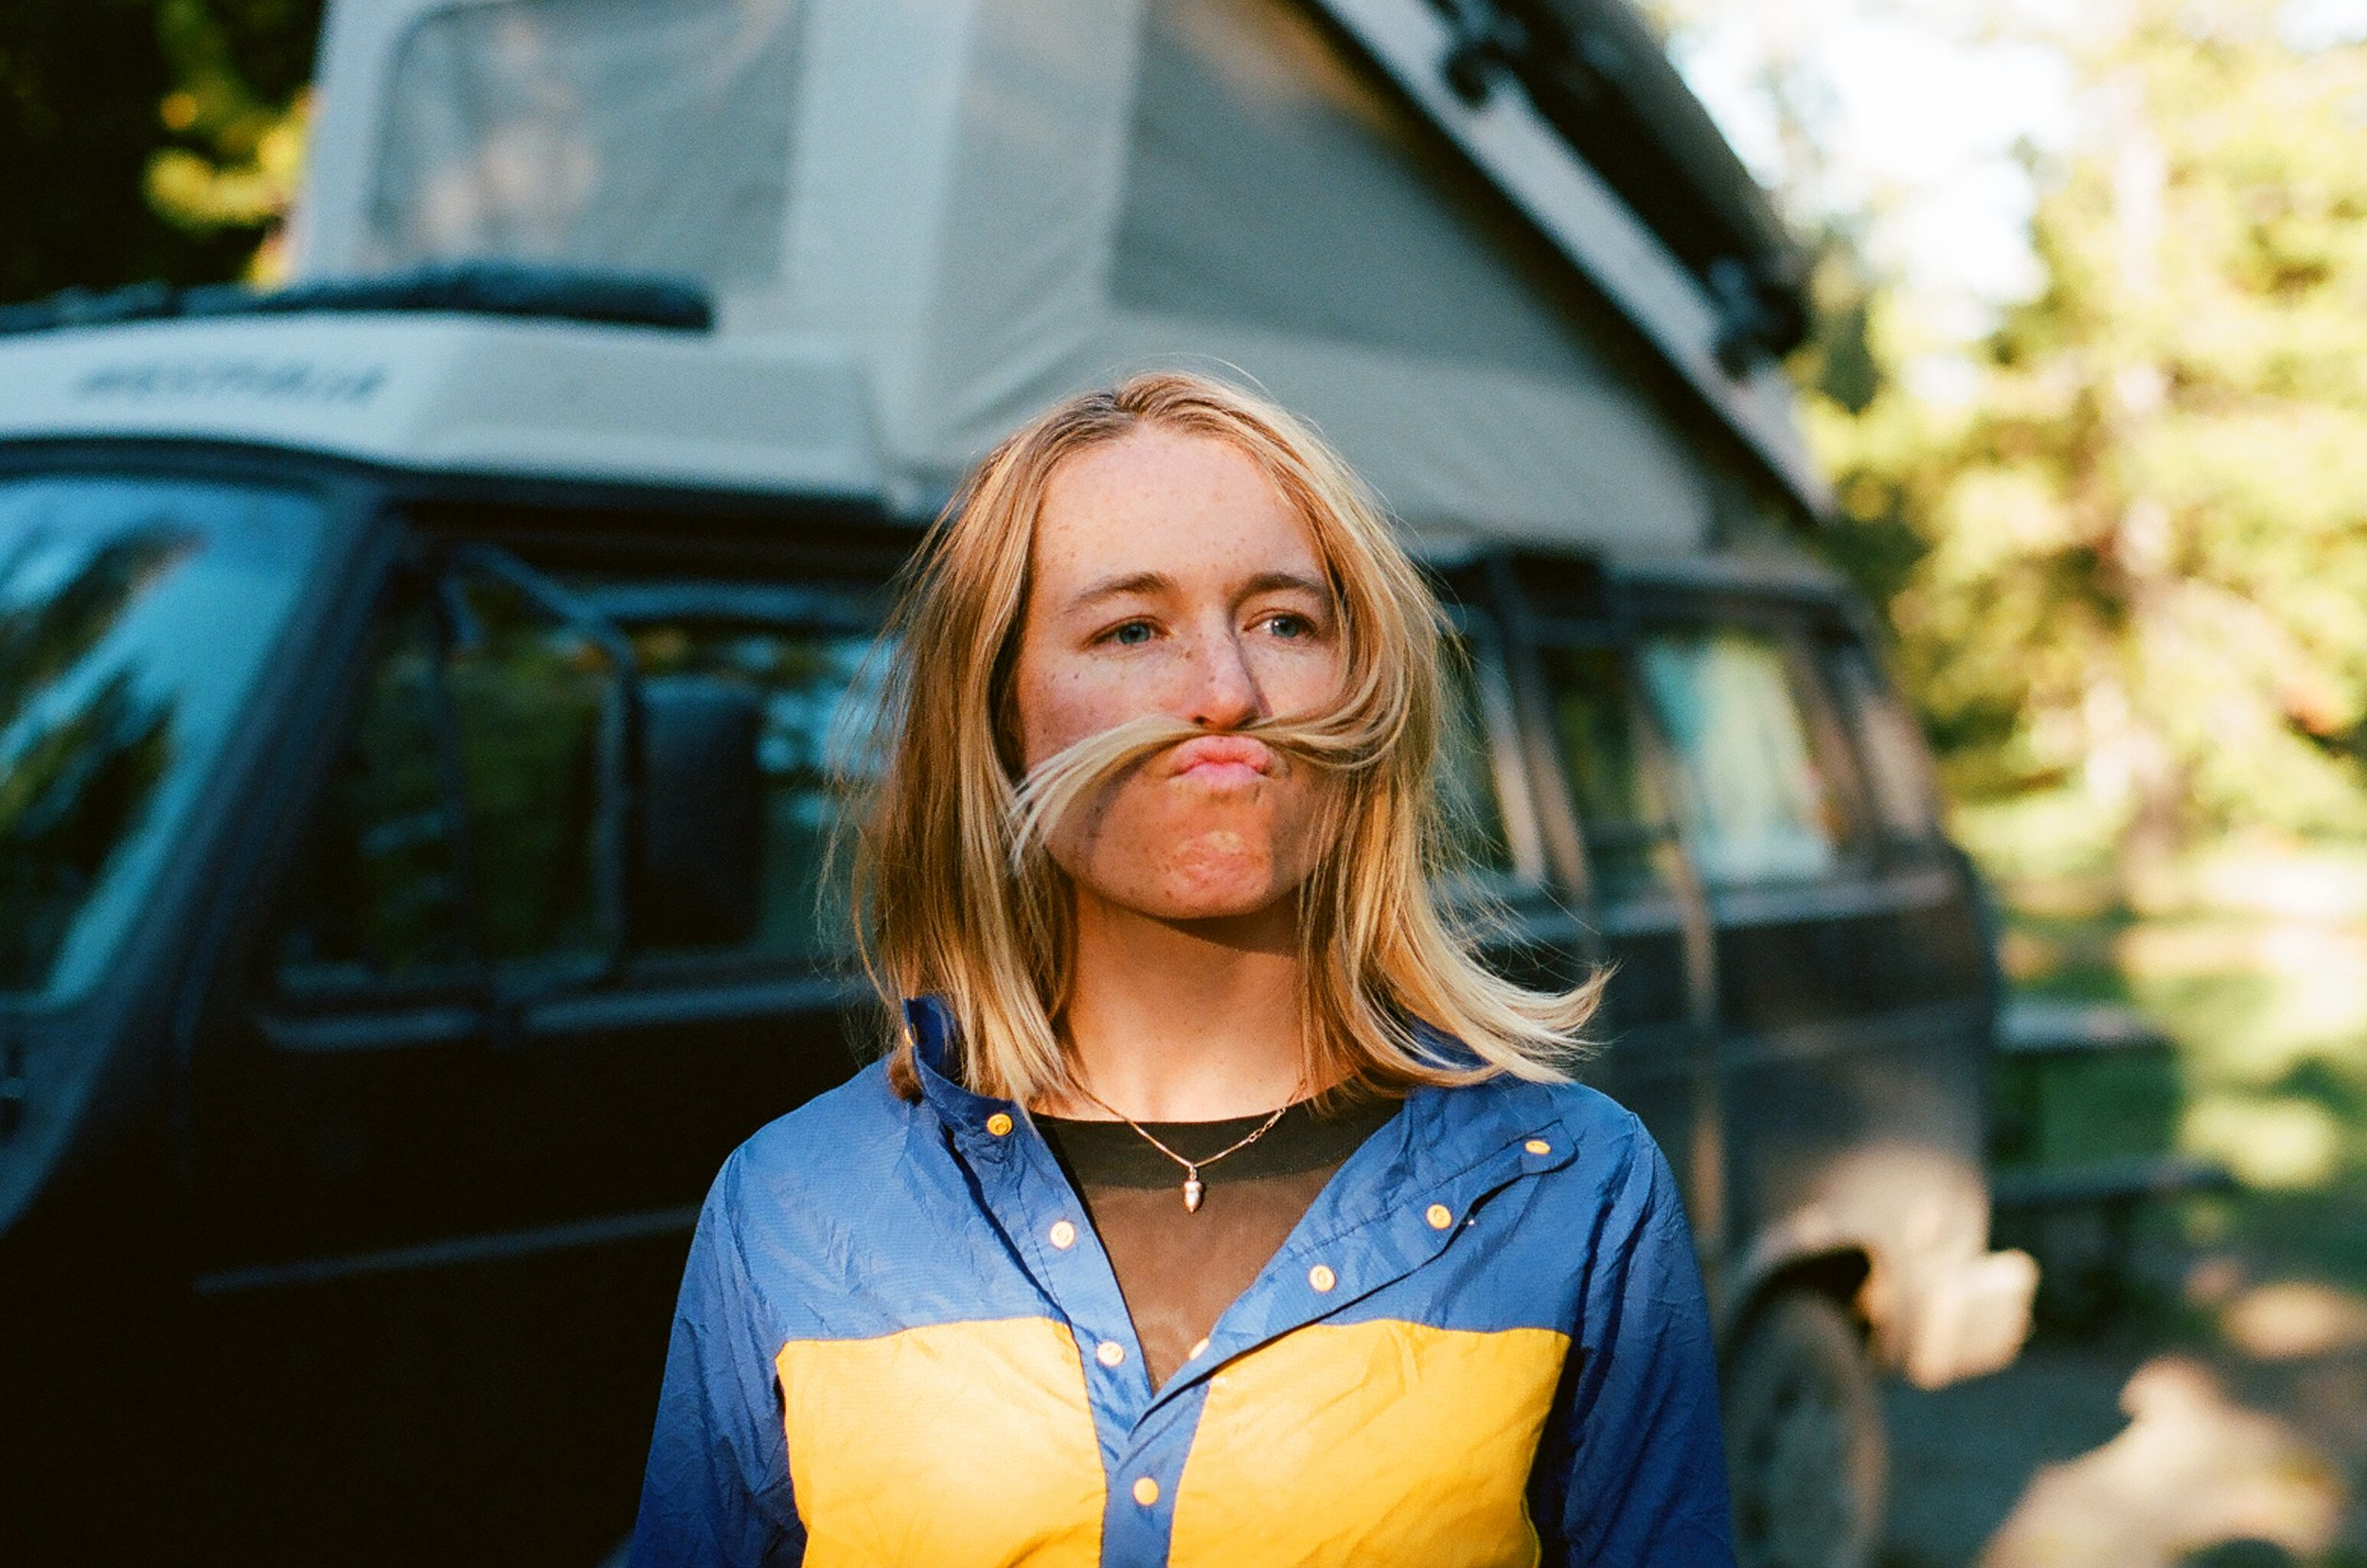 MAK showing off her even more impressive mustache, 35mm